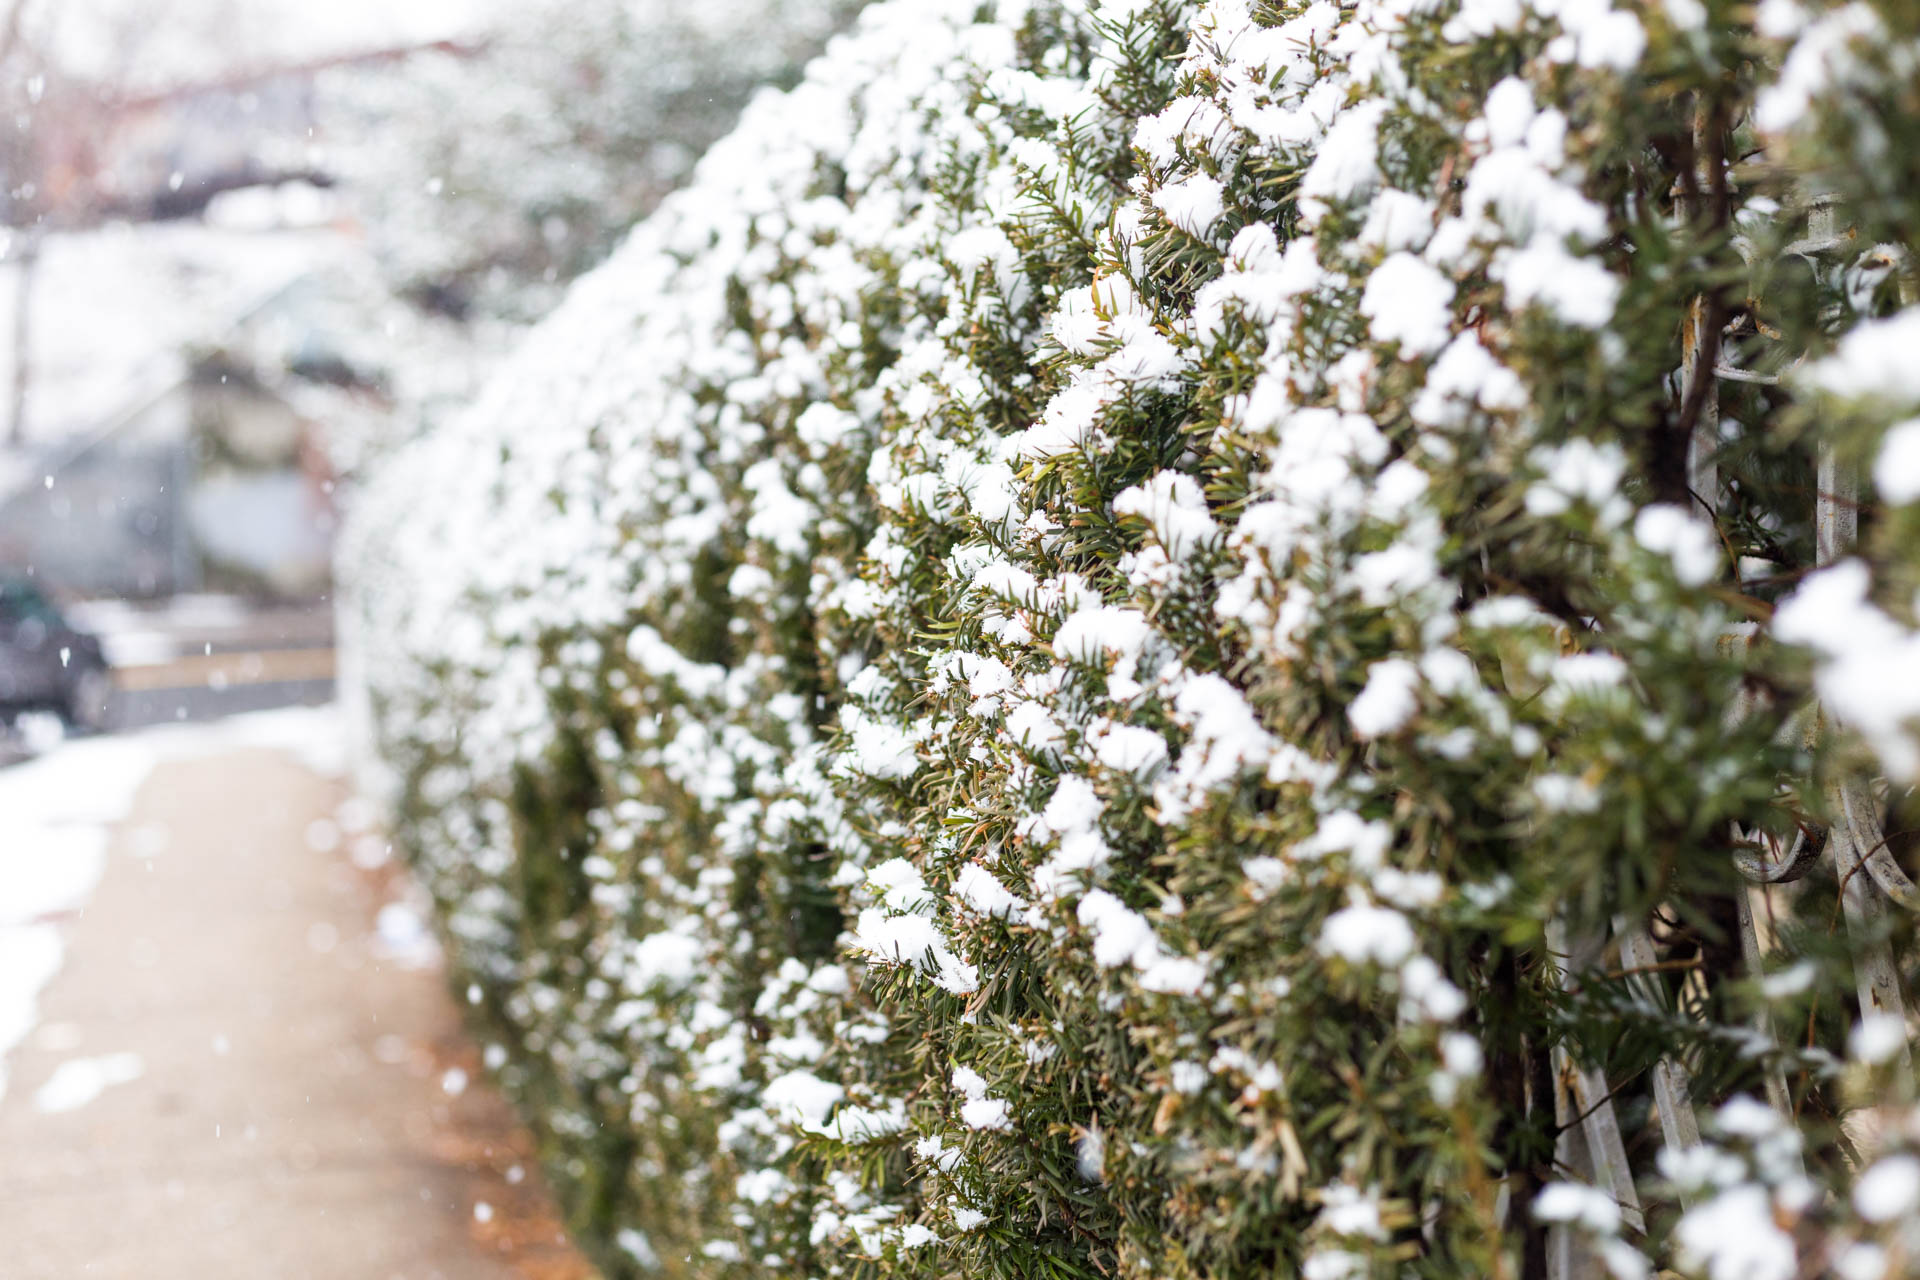 Similarly here, I wanted a little more nature focus and less gritty city, so I got in close to this hedge to make this image of snow covered needles.